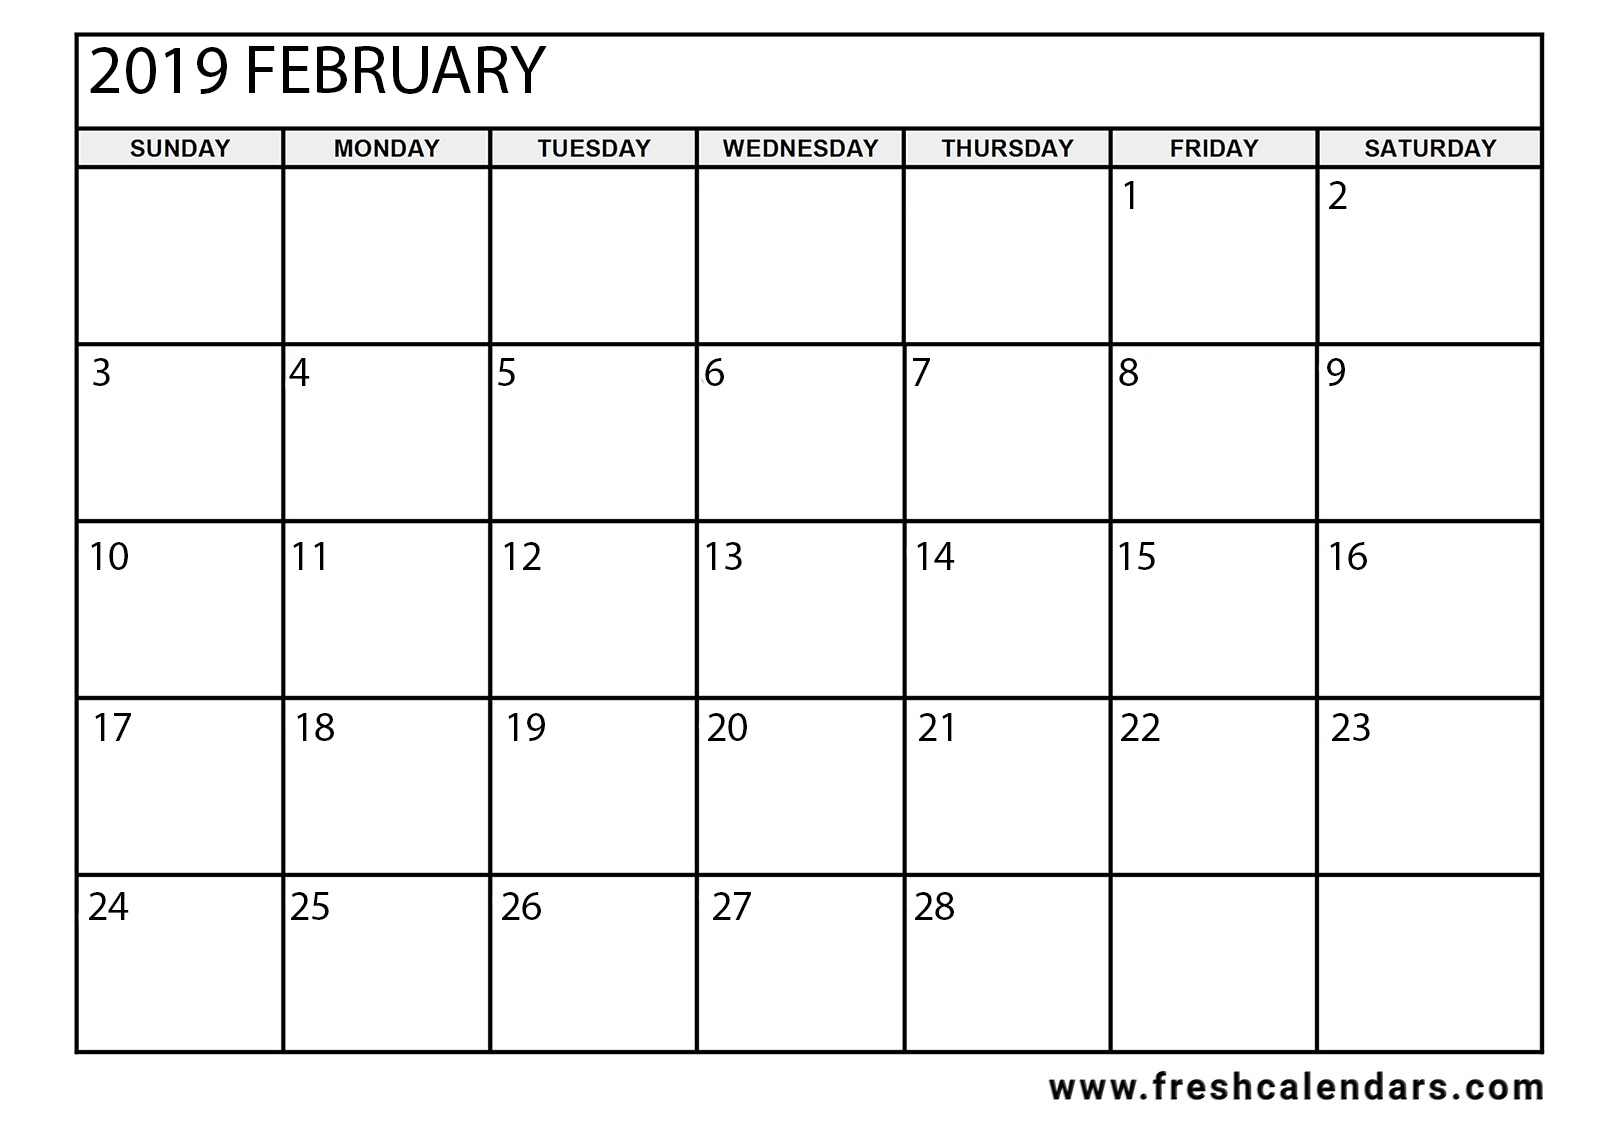 15 best february 2019 calendar printable templates::February 2019 Calendar A4